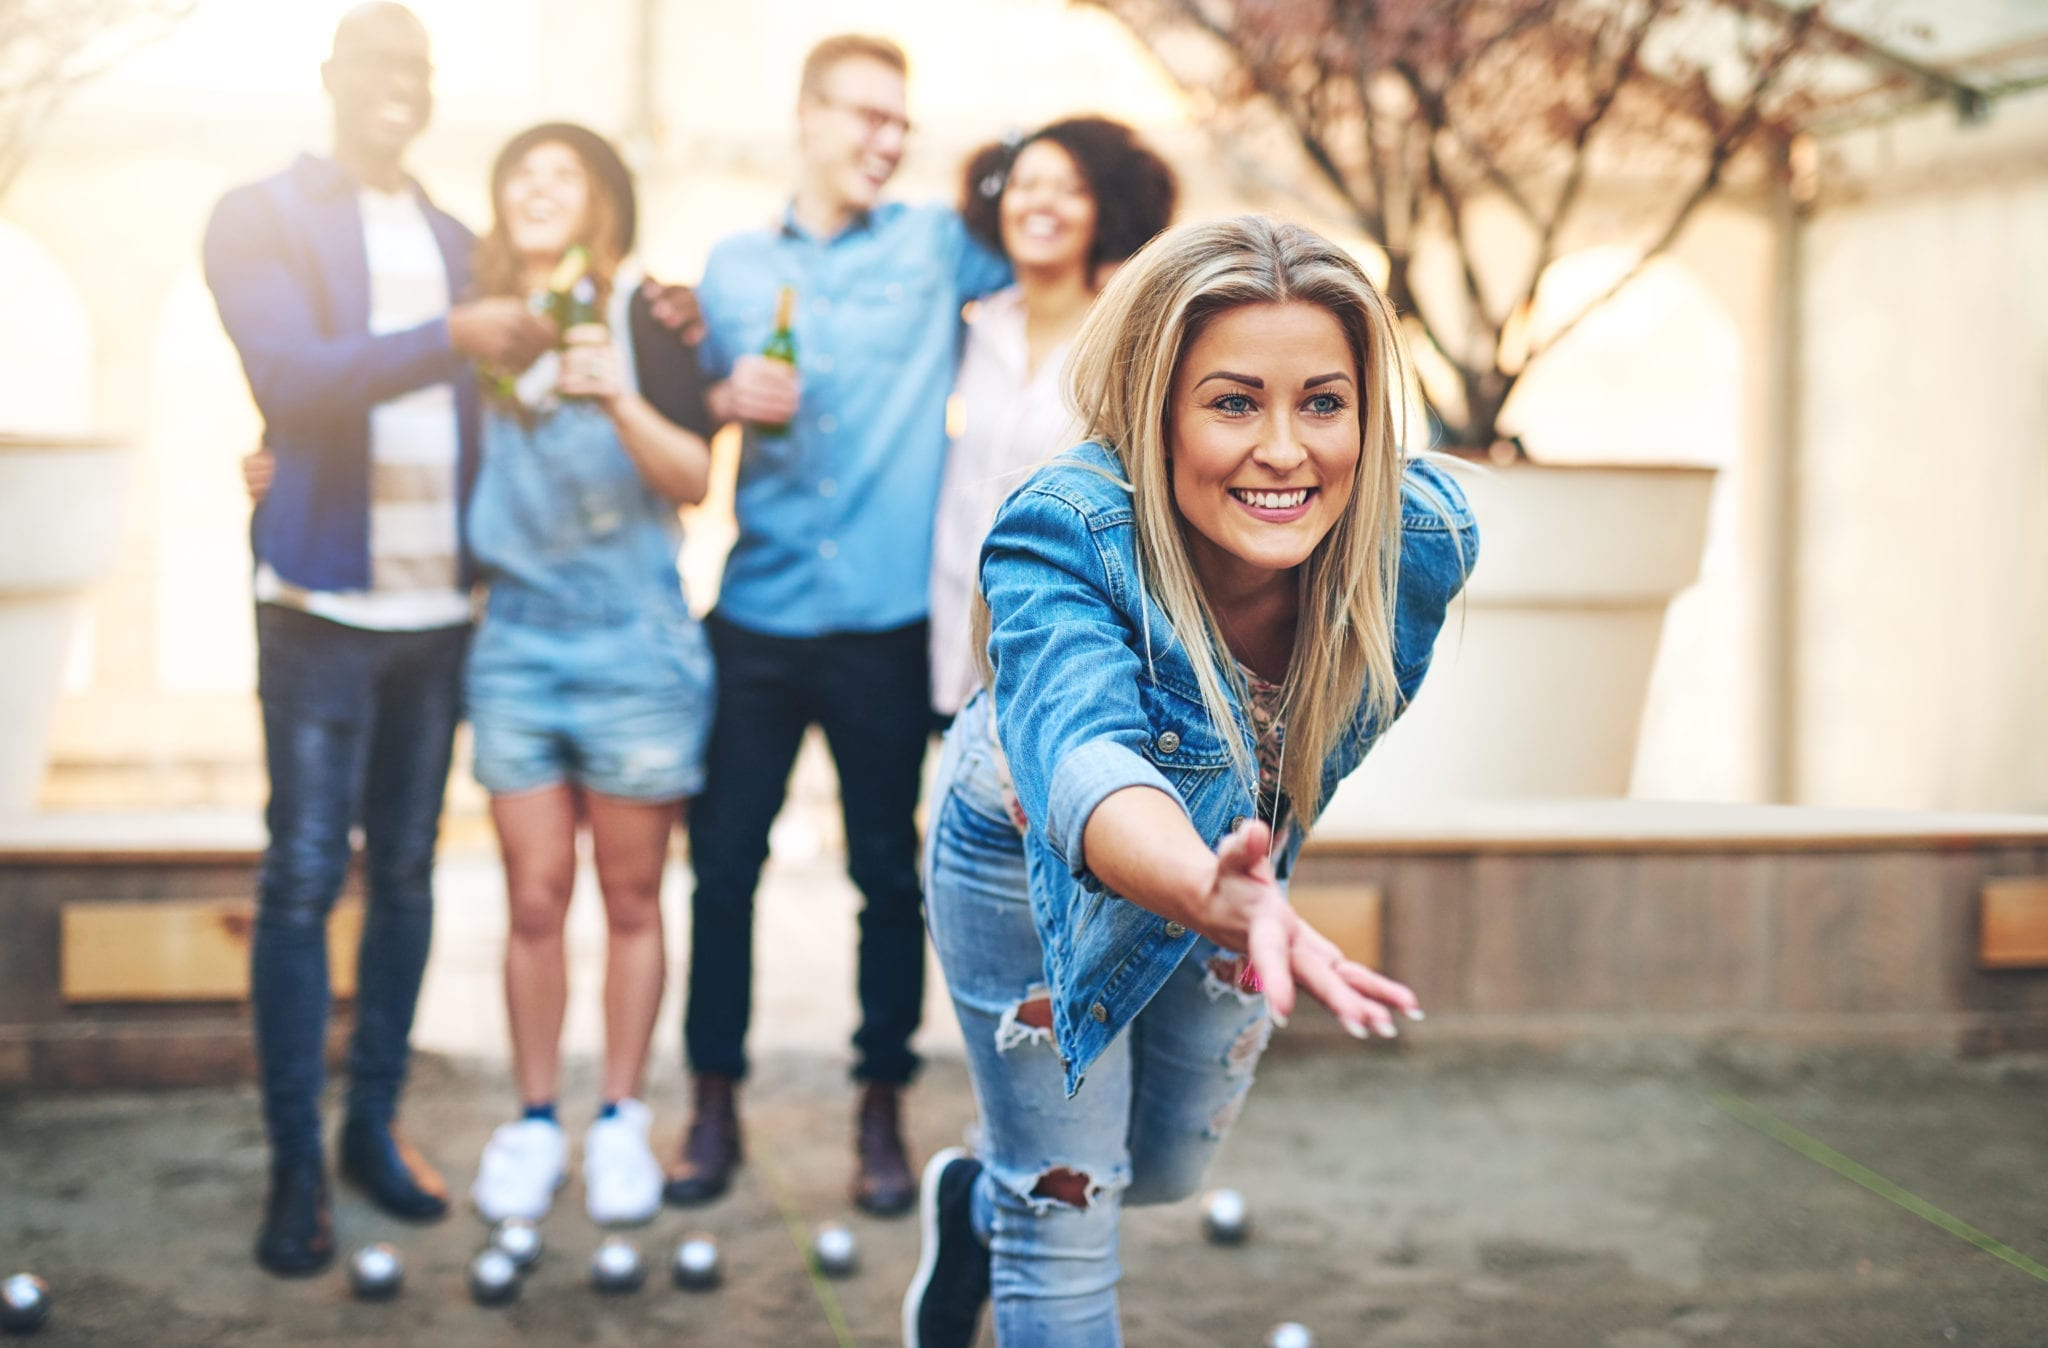 Group of multiracial friends clinking bottles of beer while pretty young woman throwing ball playing petanque.